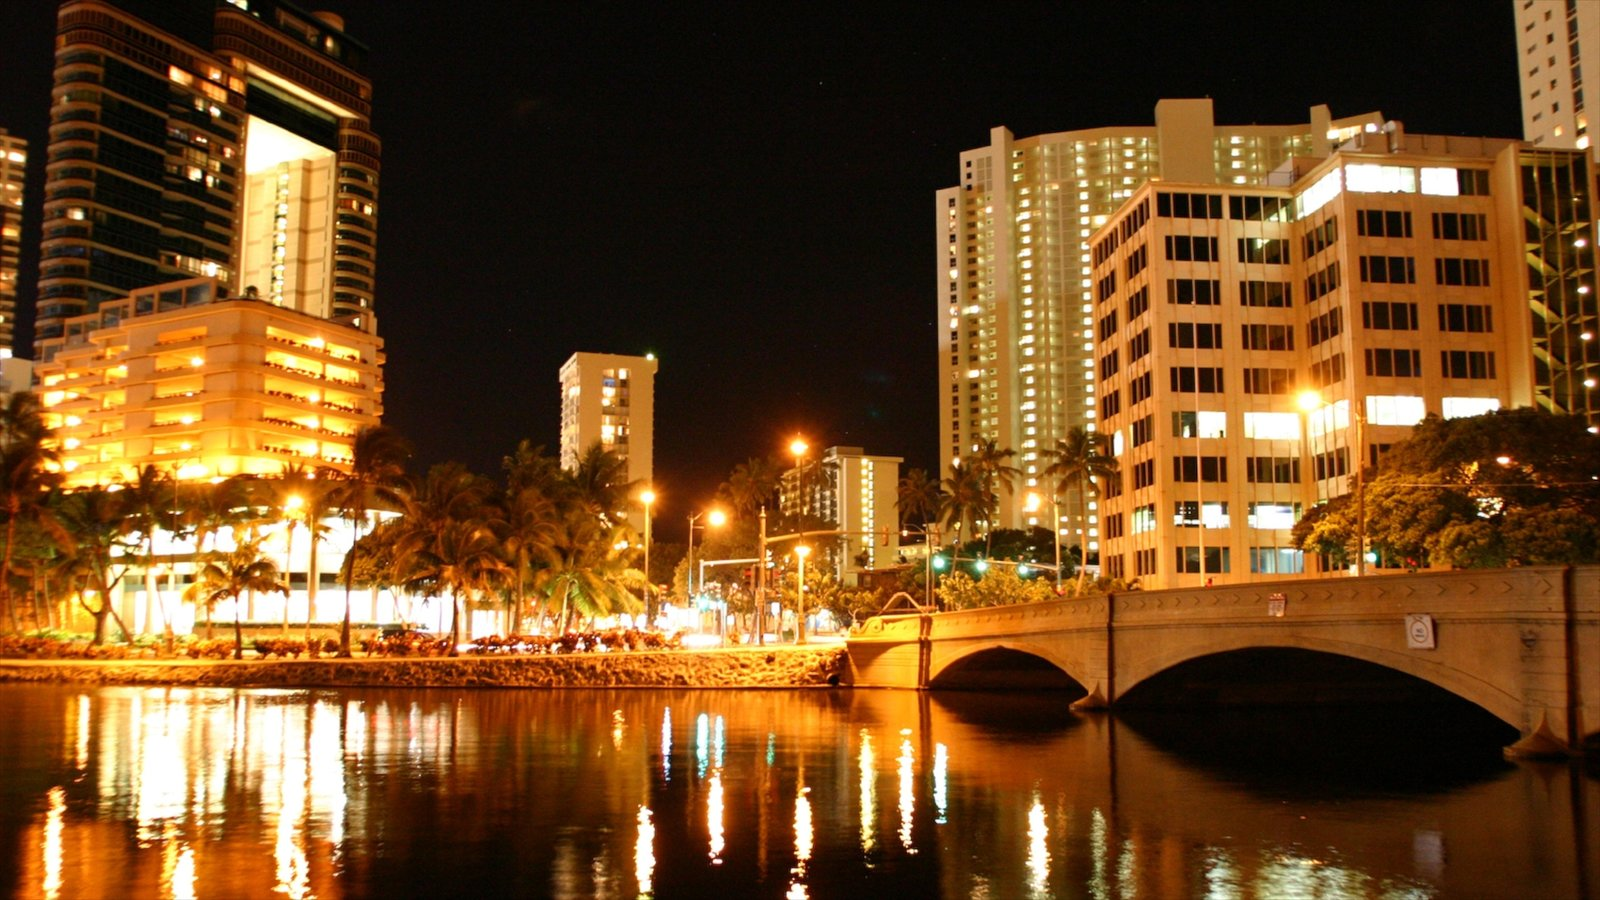 Downtown Pictures: View Images of Hawaii